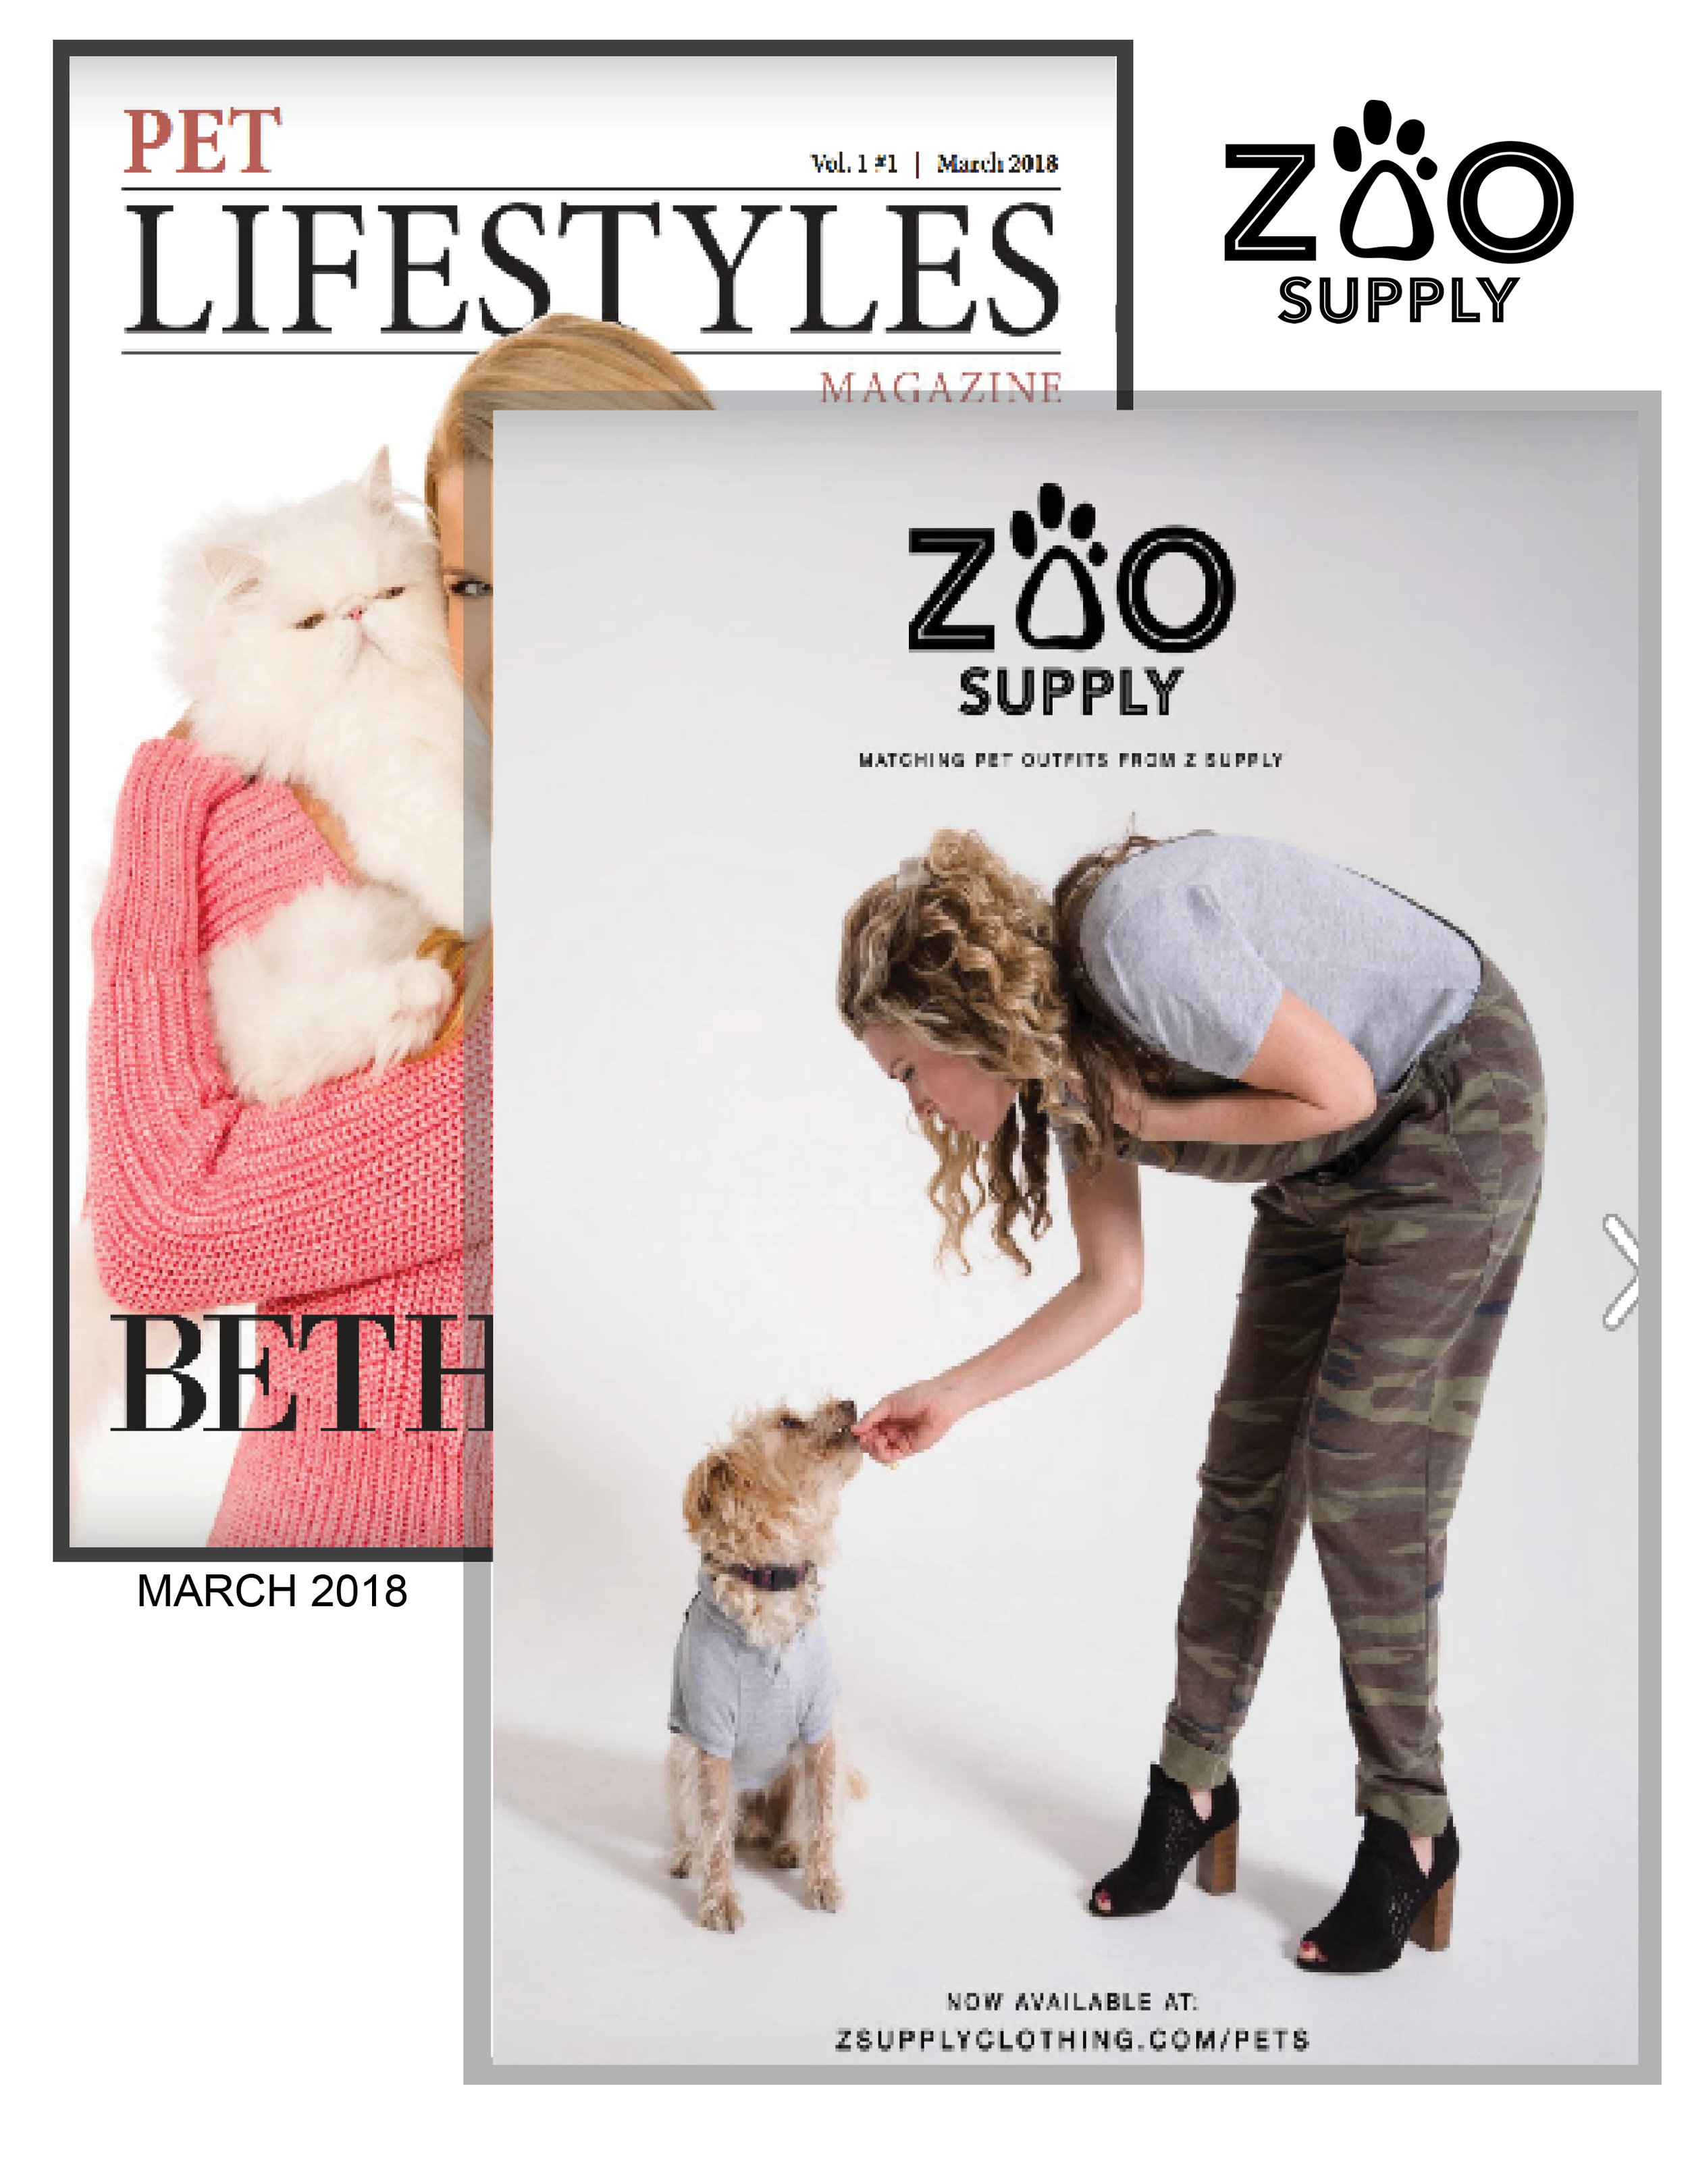 ZooSupply_PetLifestyles_March2018.jpg